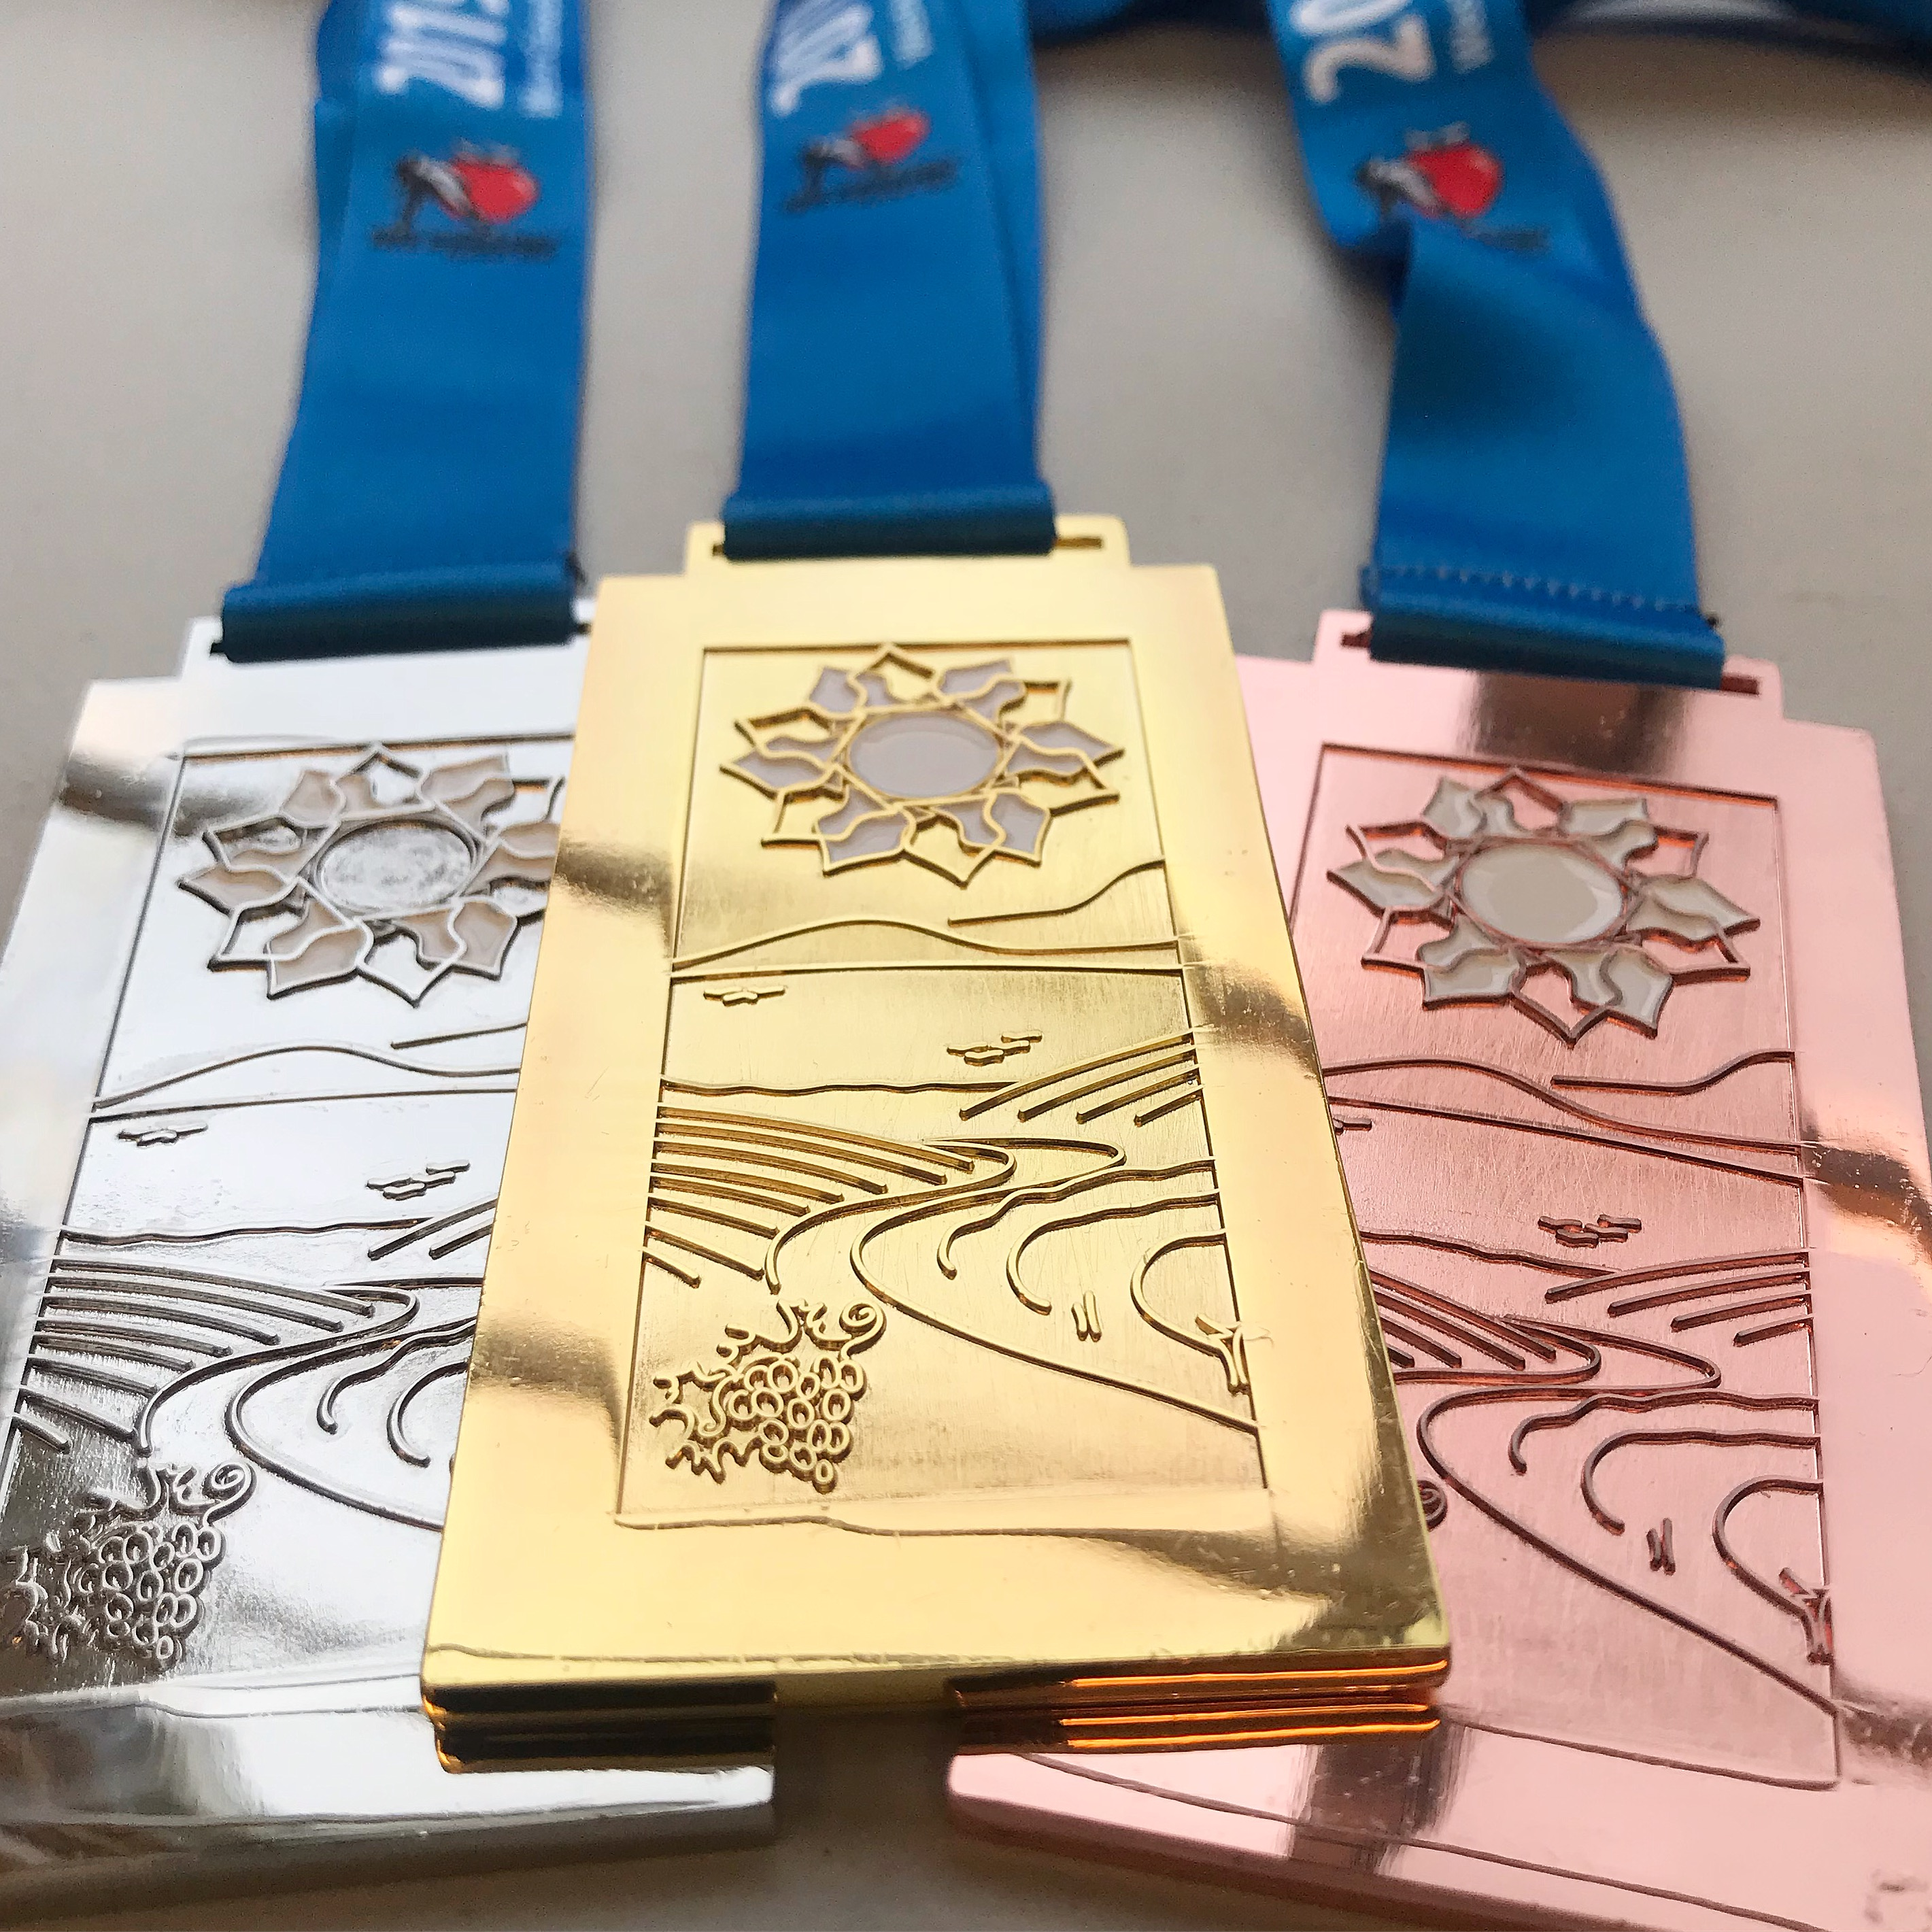 Western Canadian Cross-Country Ski Championship Medals 2019